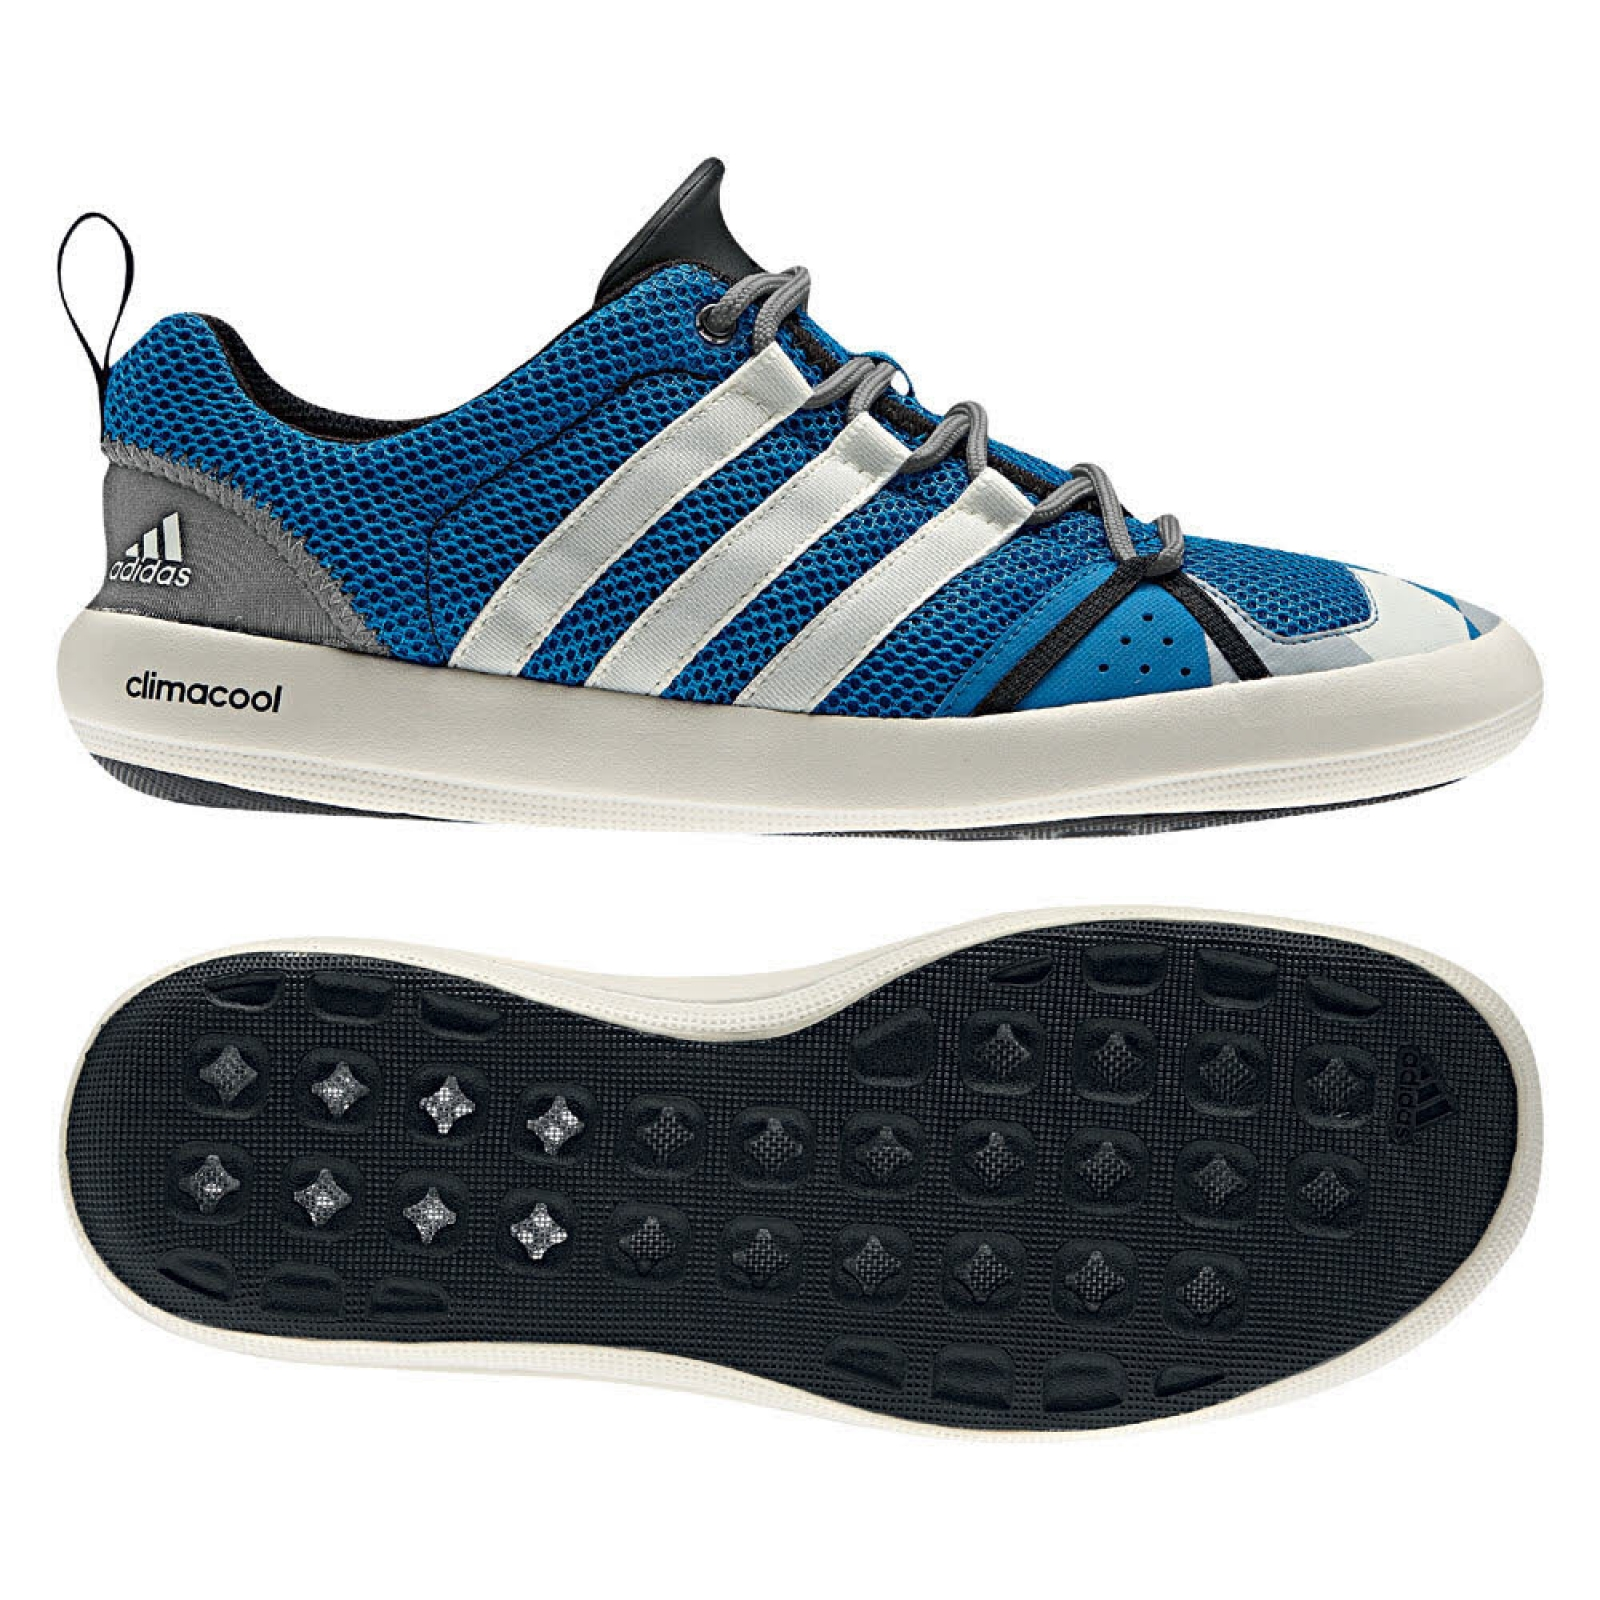 Adidas Climacool Boat Lace - Sportbekleidung, Sportartikel f r Sport